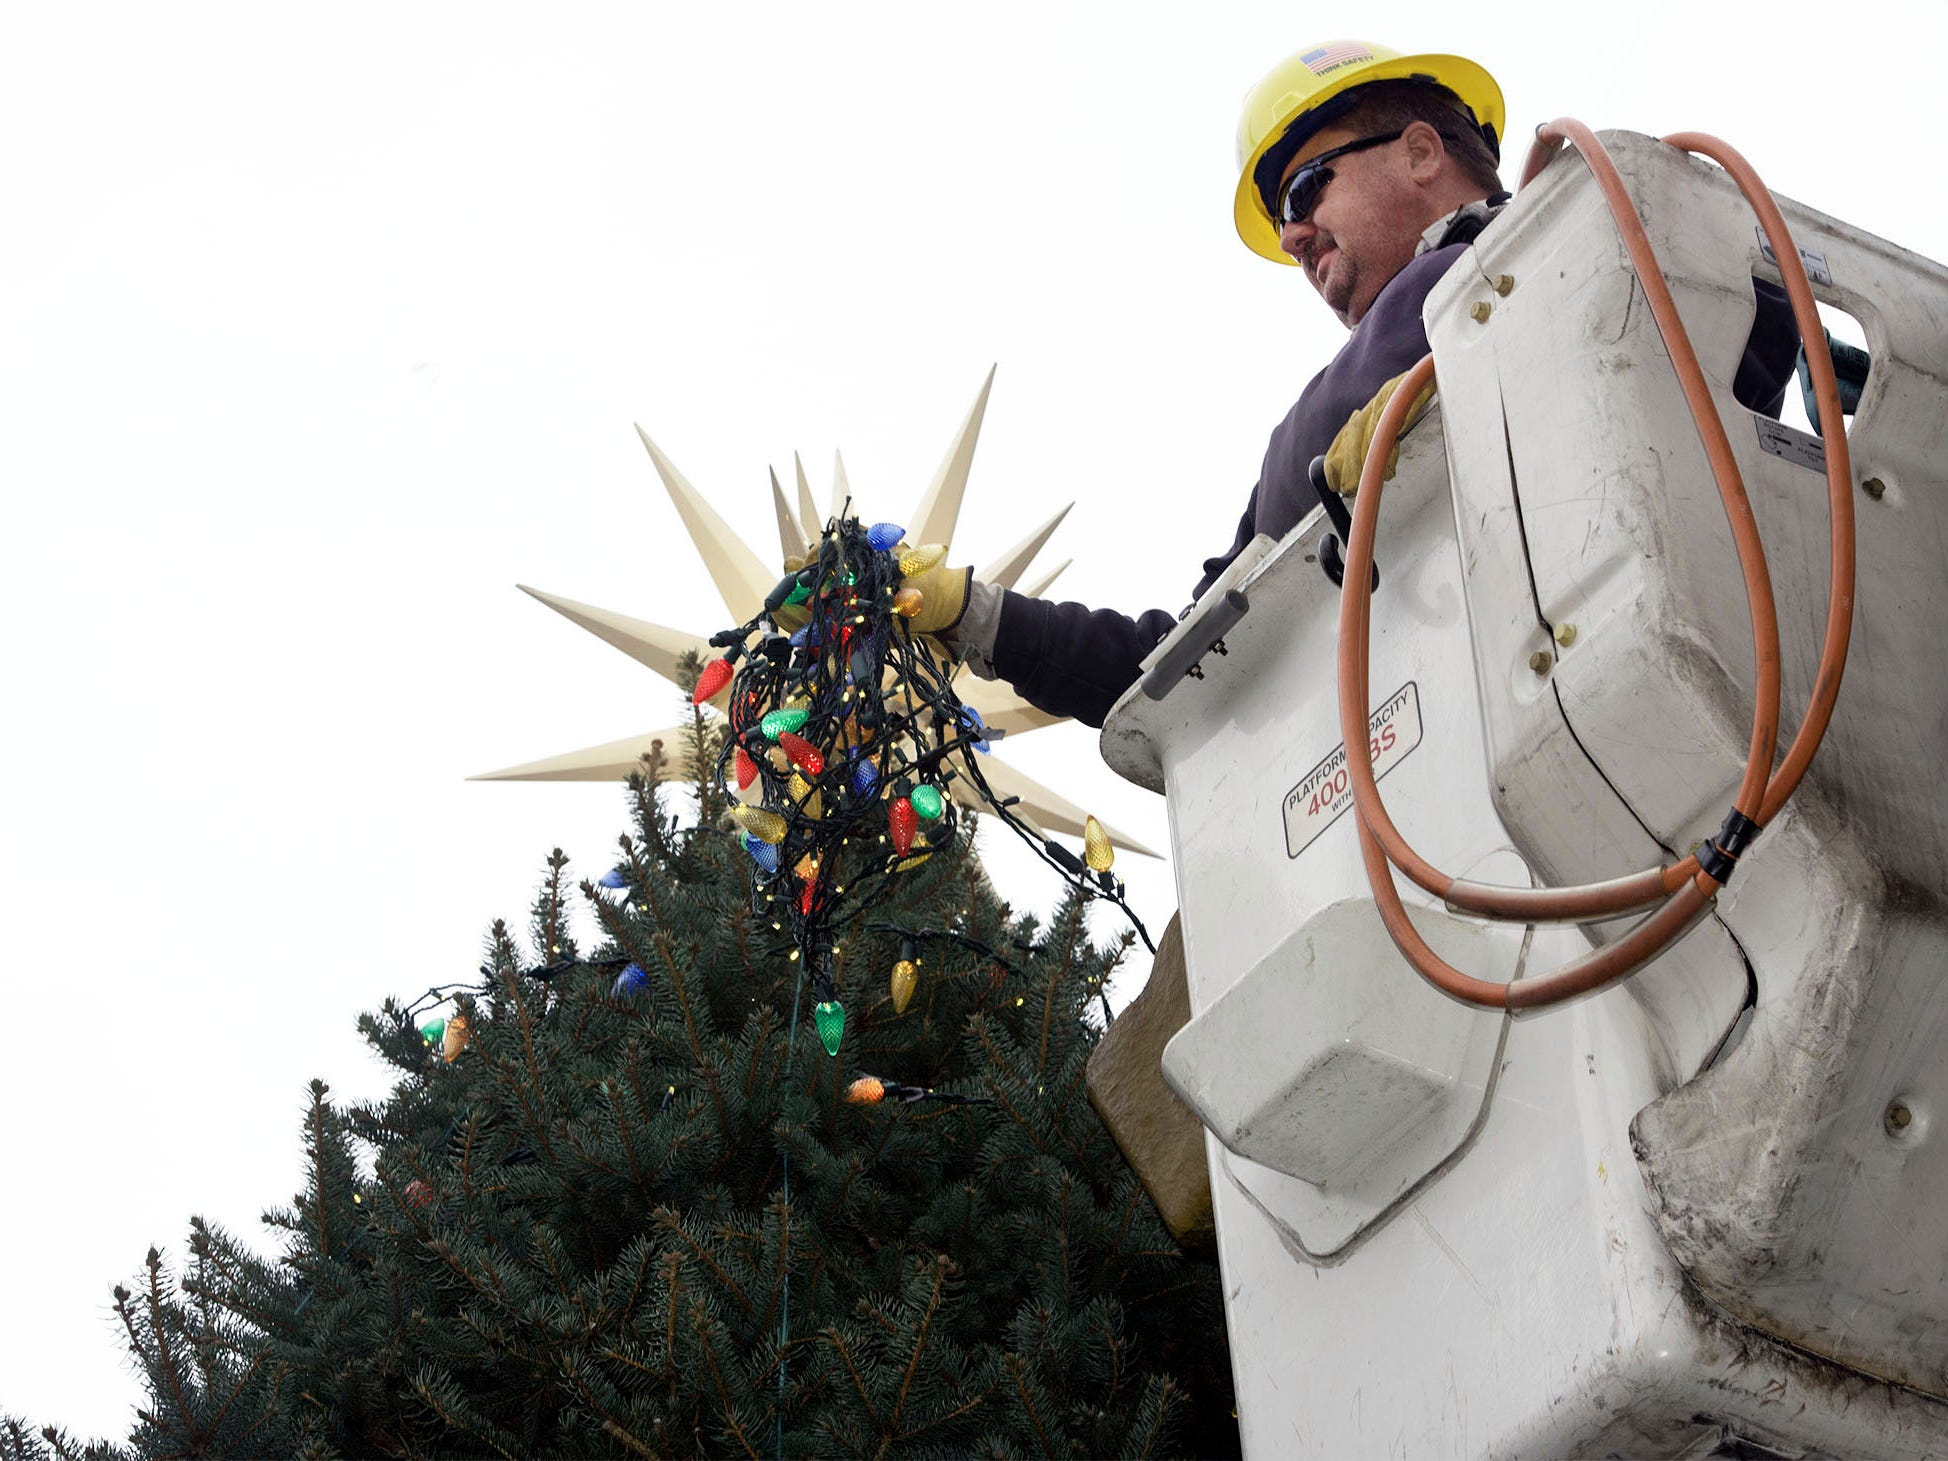 Borough of Chambersburg lineman Rob Roberts trims the Christmas tree at Memorial Square on Tuesday, November 13, 2018. This year's tree was donated by Darlene Fowler of Fayetteville.